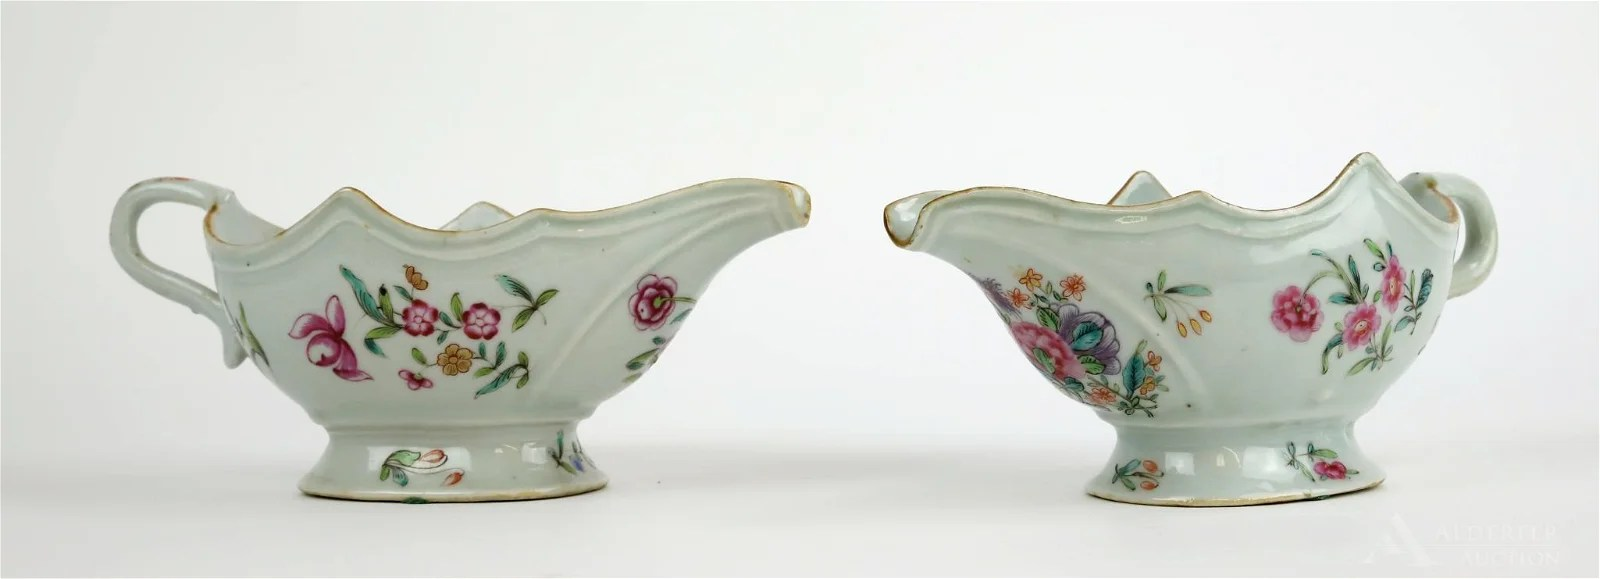 18th c. Chinese Export Sauce Boats